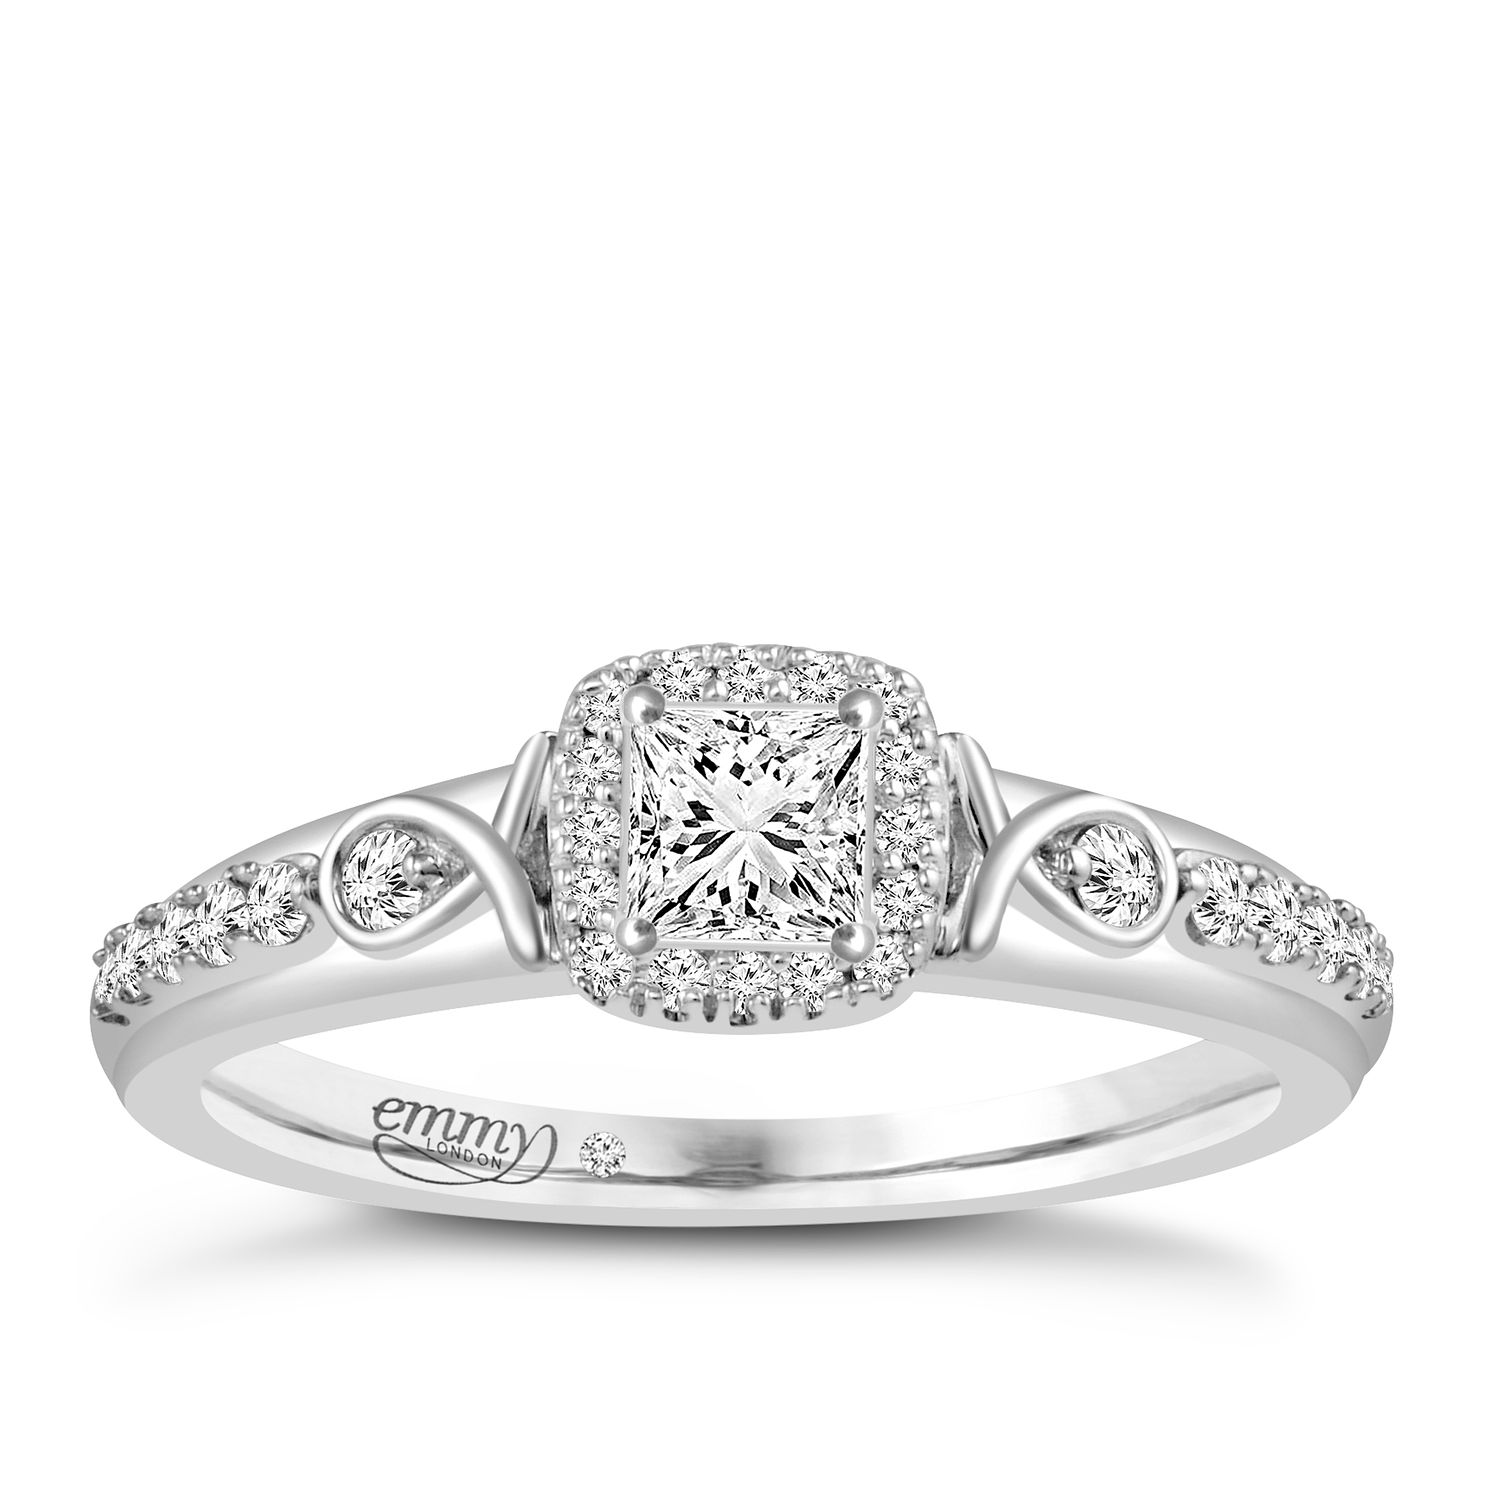 Emmy London 18ct White Gold 2/5 Carat Diamond Solitaire Ring - Product number 4538013